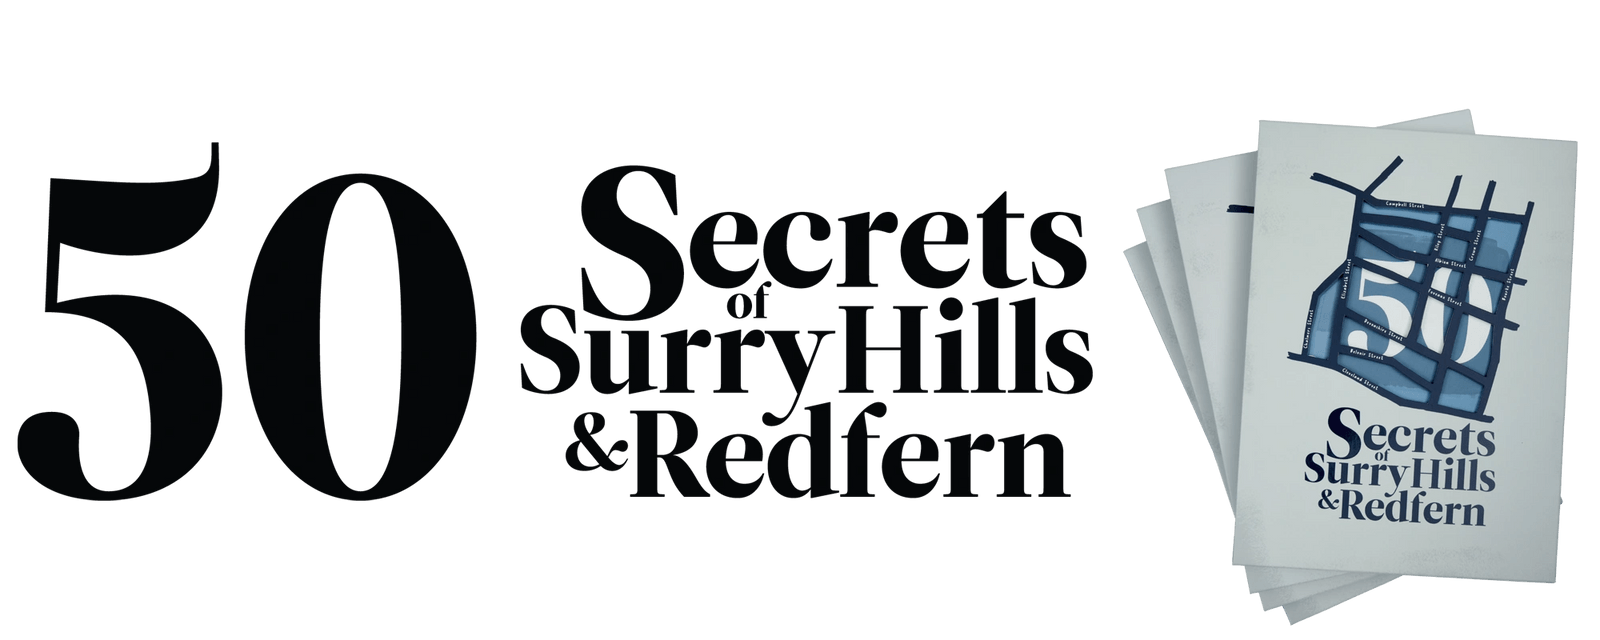 50Secrets of Surry hills & Redfern